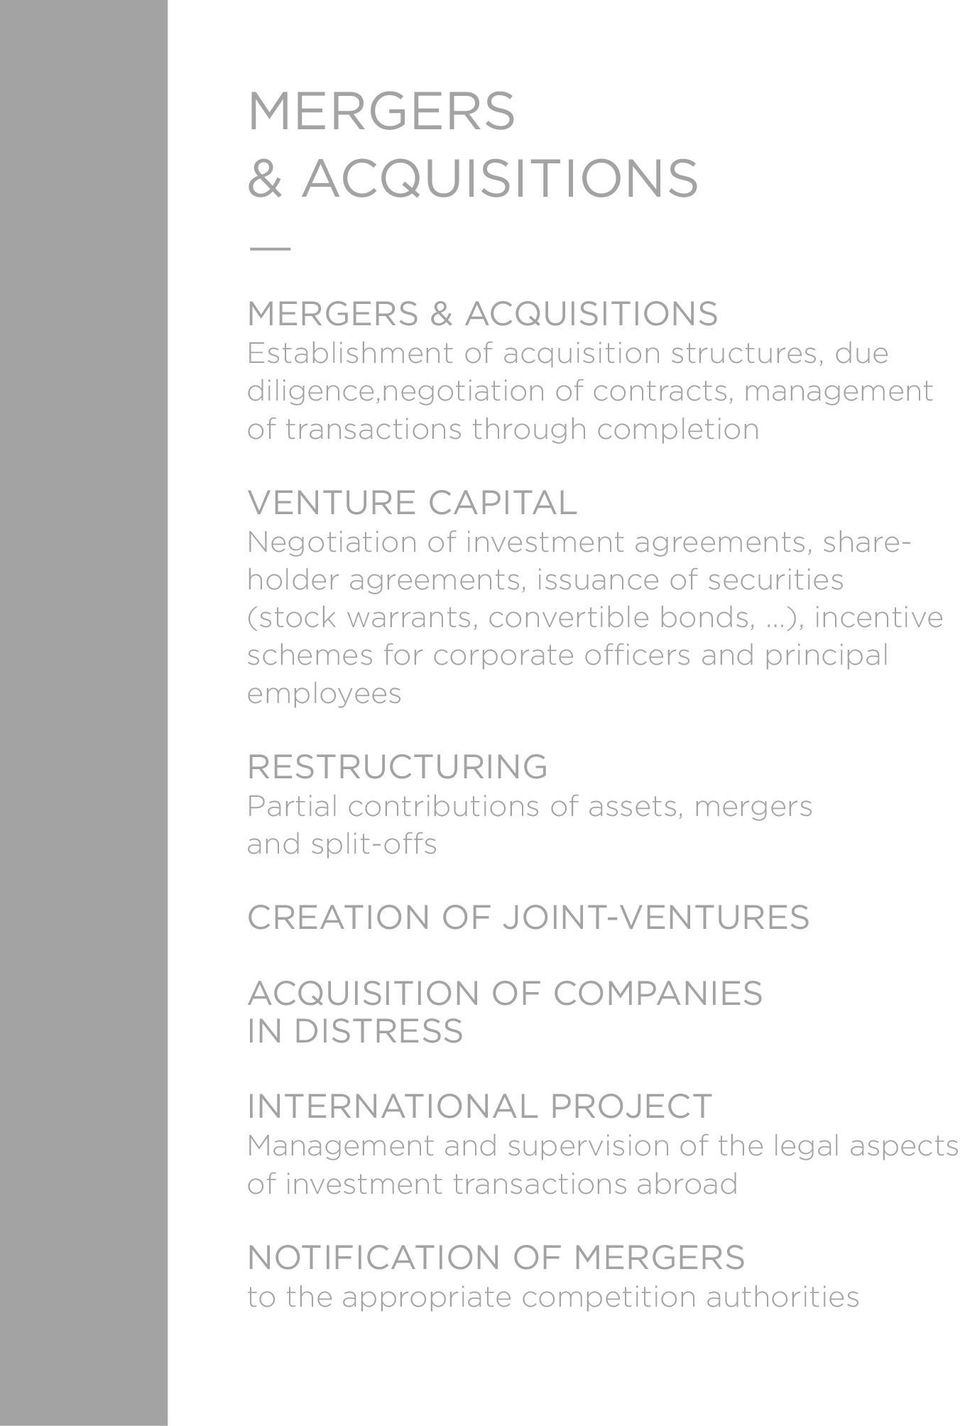 for corporate officers and principal employees RESTRUCTURING Partial contributions of assets, mergers and split-offs CREATION OF JOINT-VENTURES ACQUISITION OF COMPANIES